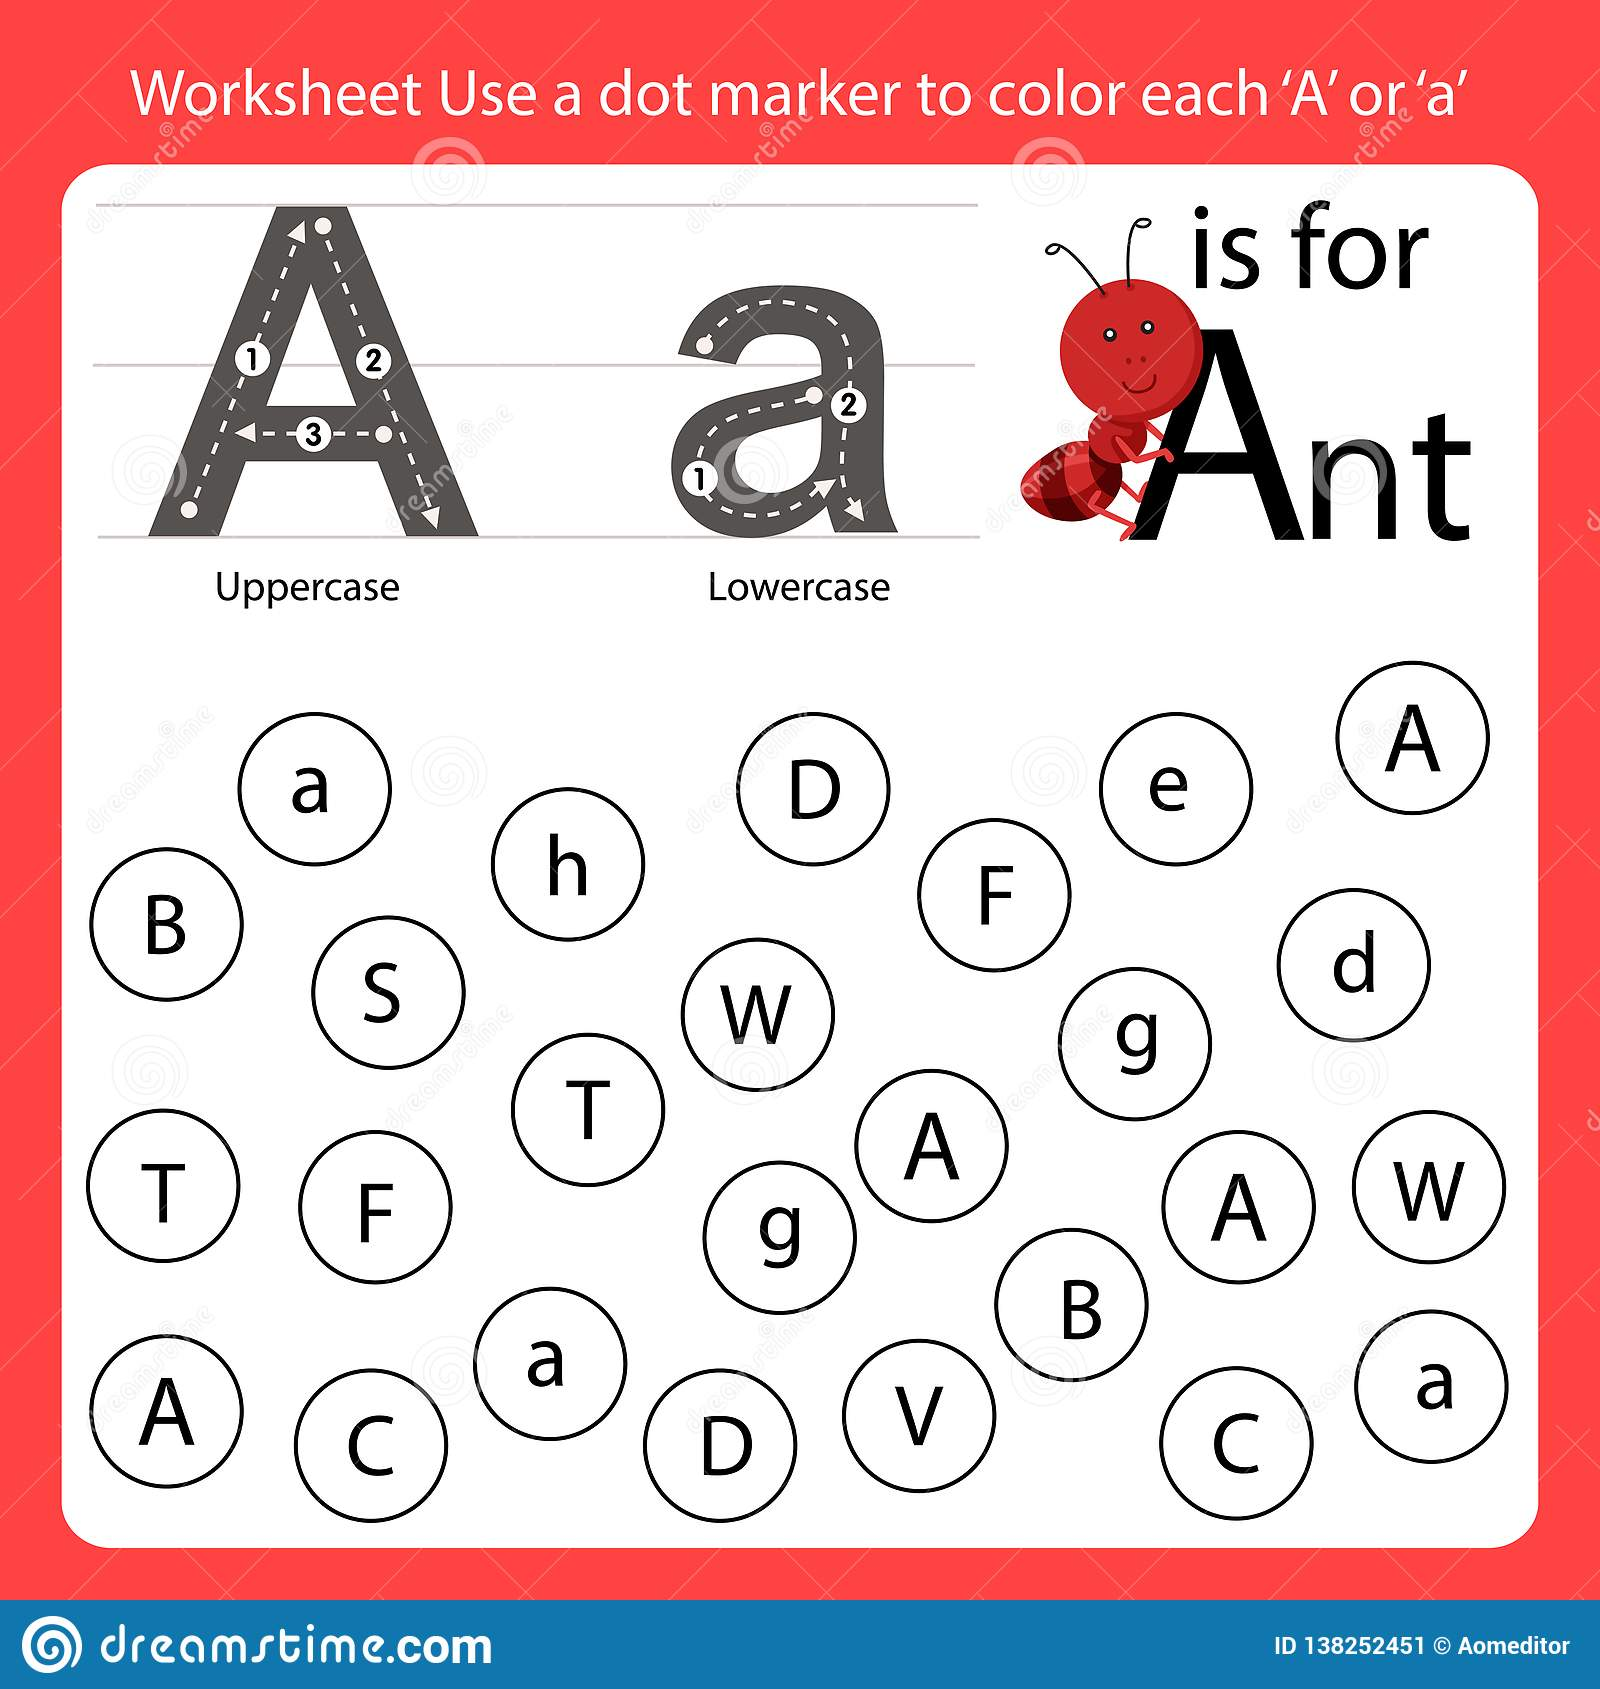 Find The Letter Worksheet Use A Dot Marker To Color Each A